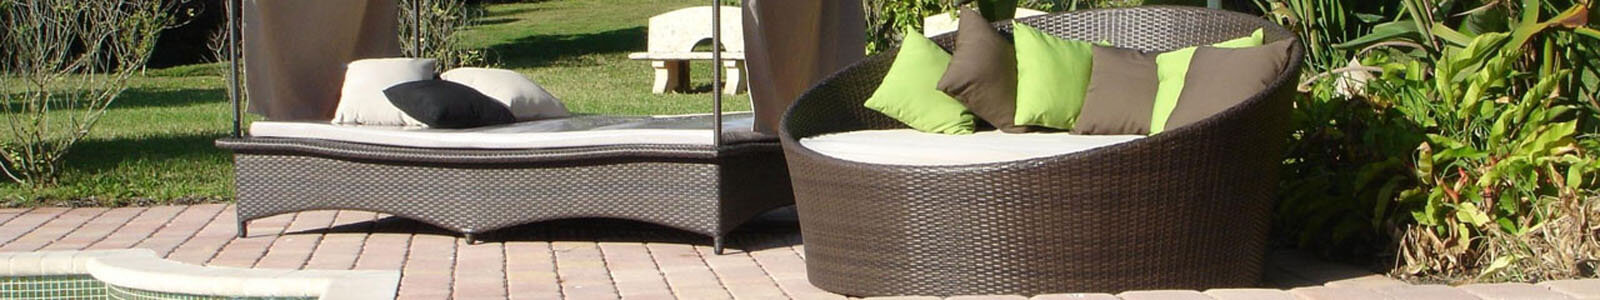 Feruci Outdoor Furniture Banner